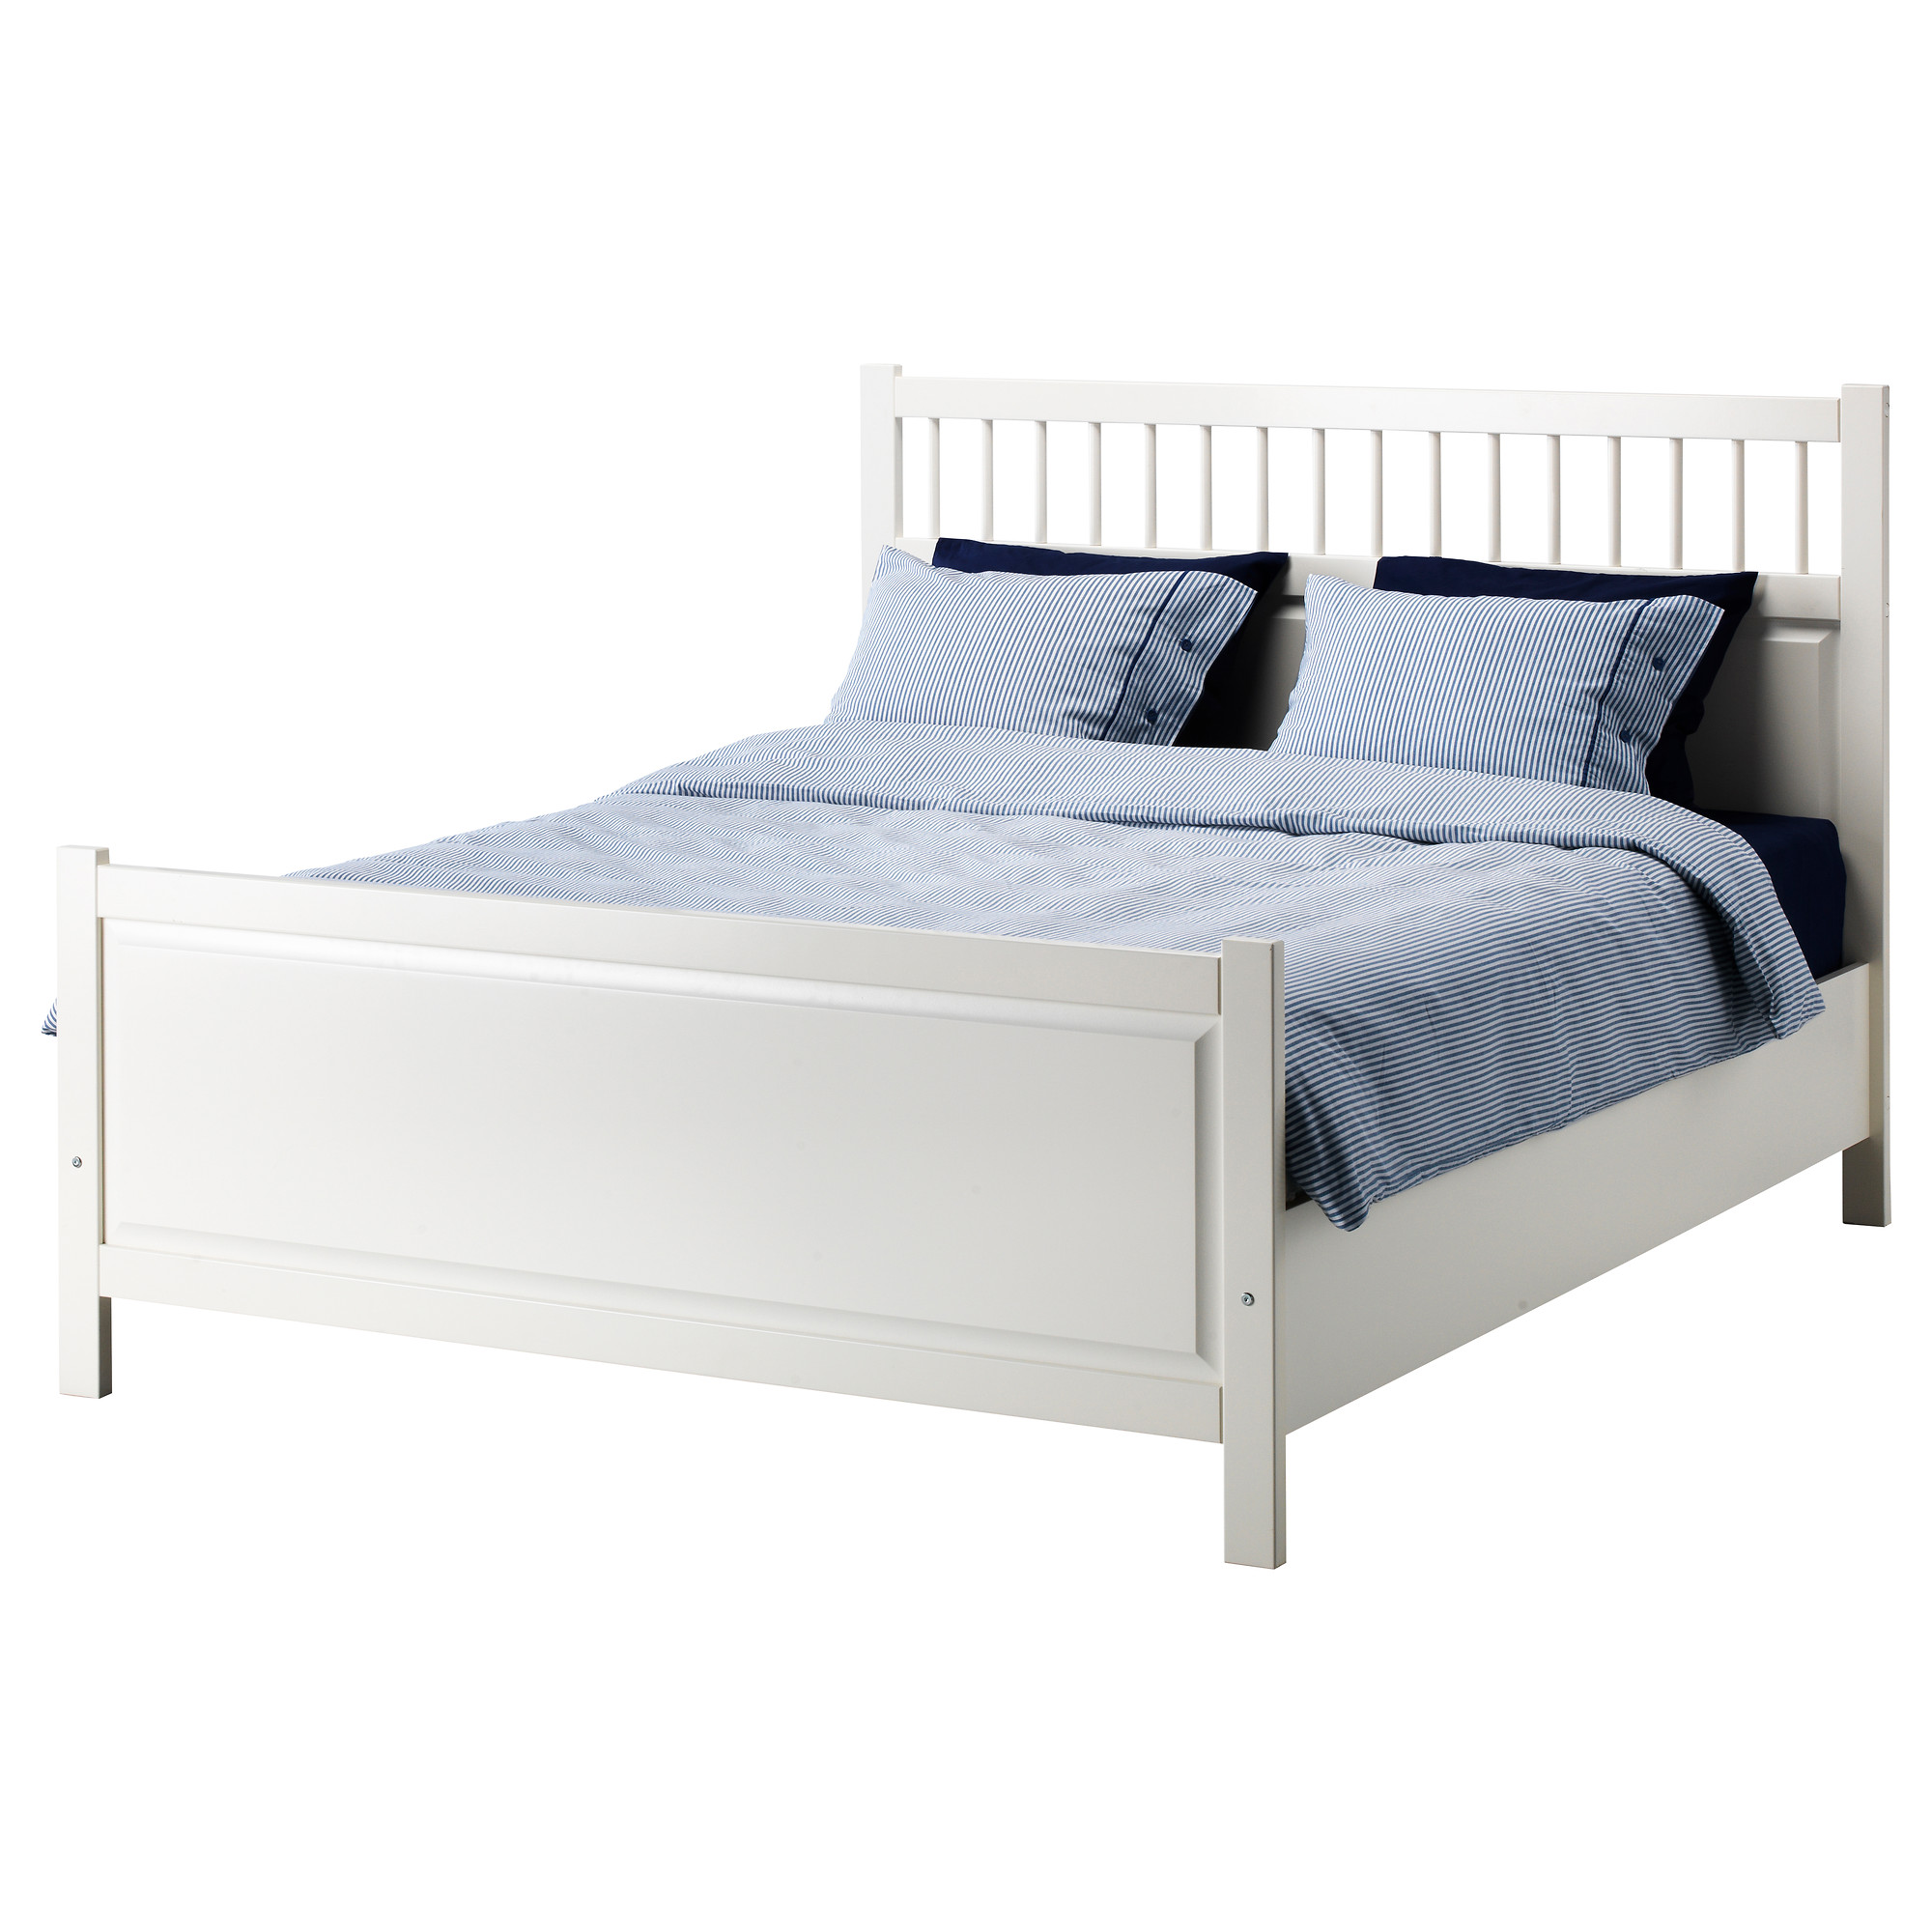 Ikea twin bed frames homesfeed - Bed frames for small rooms ...